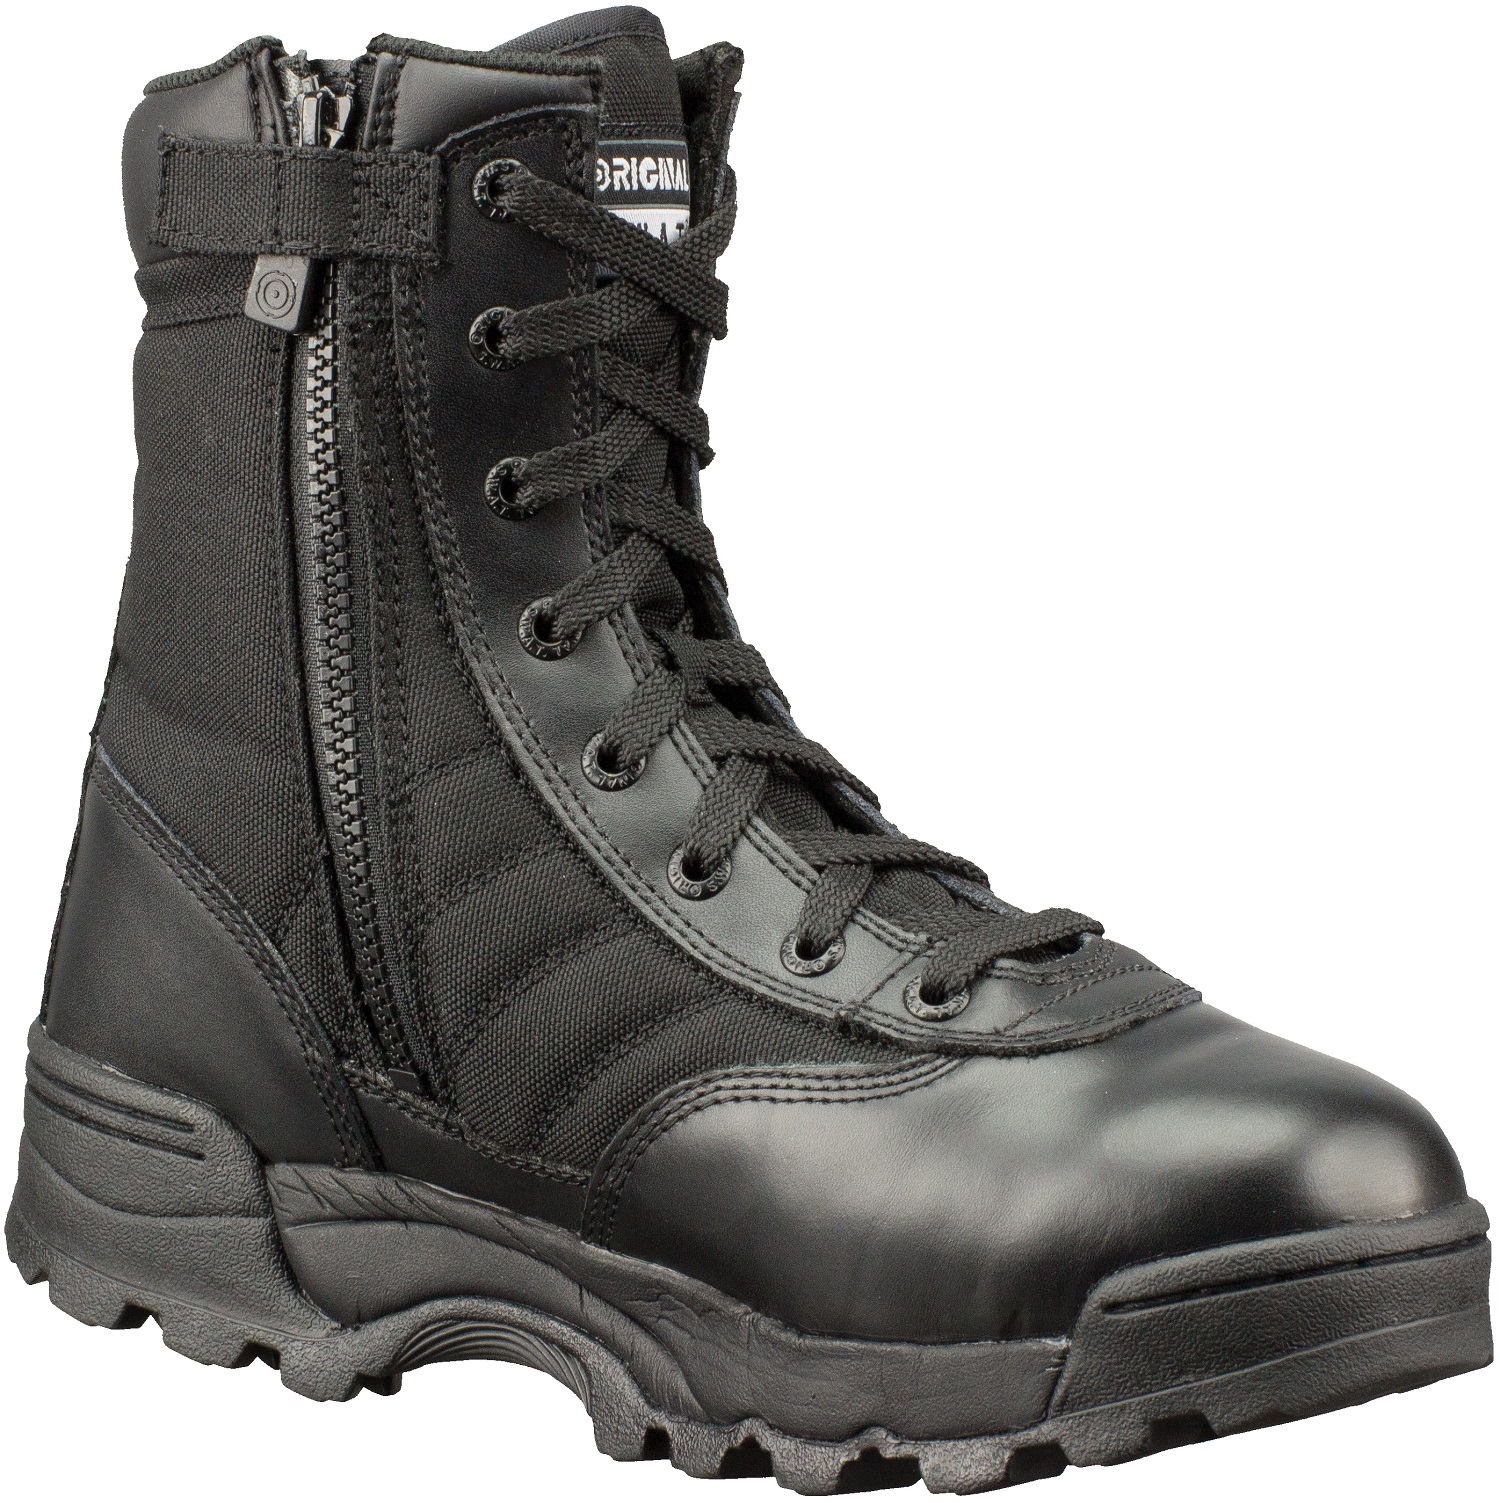 "Original Swat Men's Classic 9"" Tactical Police Military Boots Side Zip 1152"